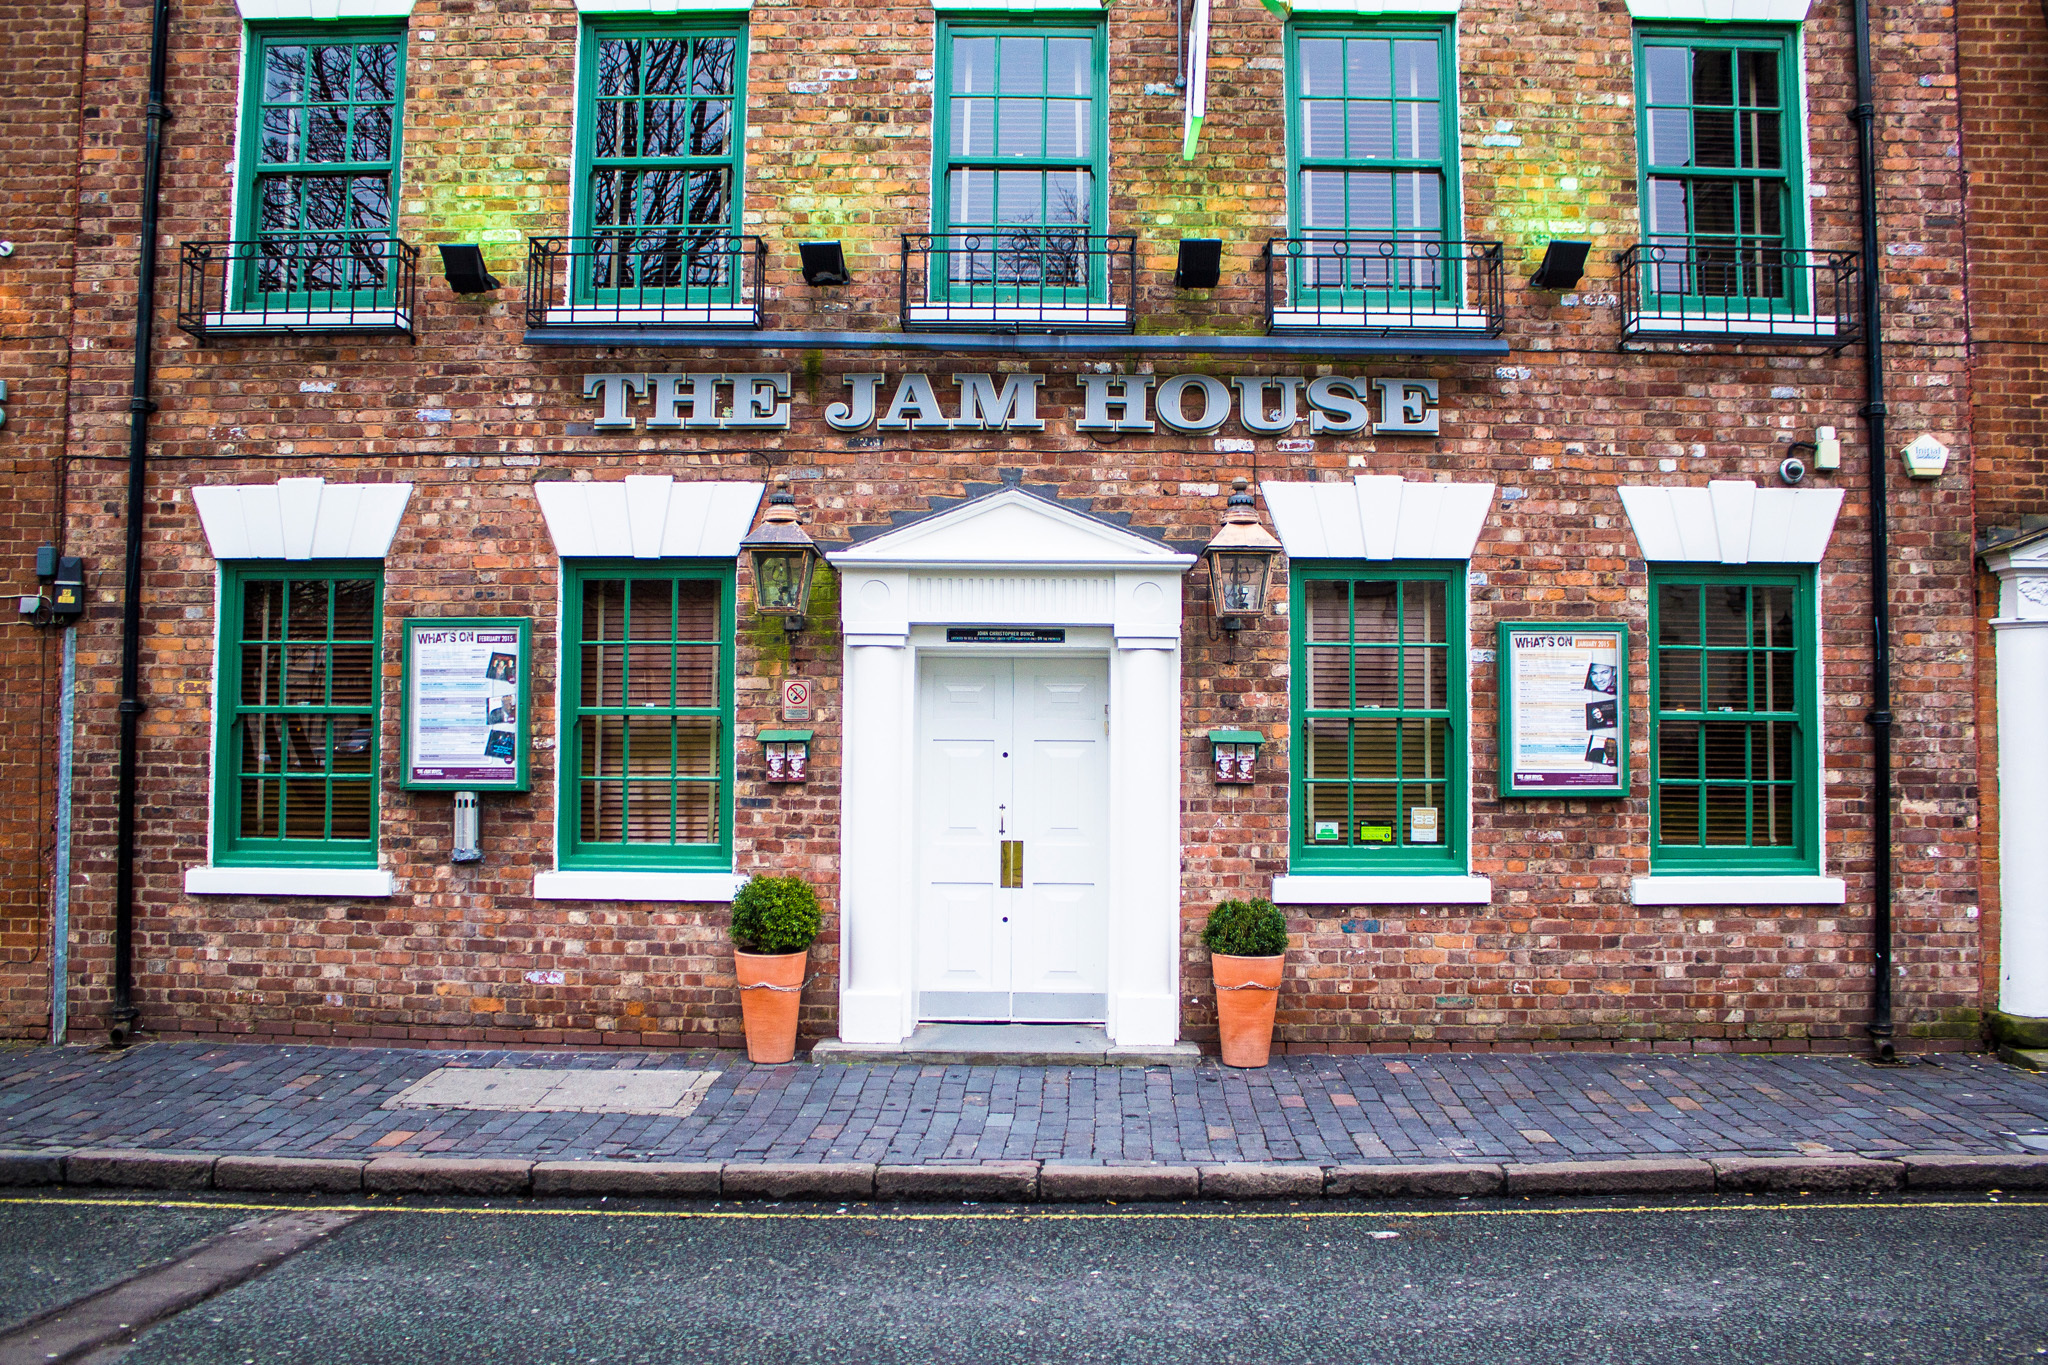 The jam house, venue